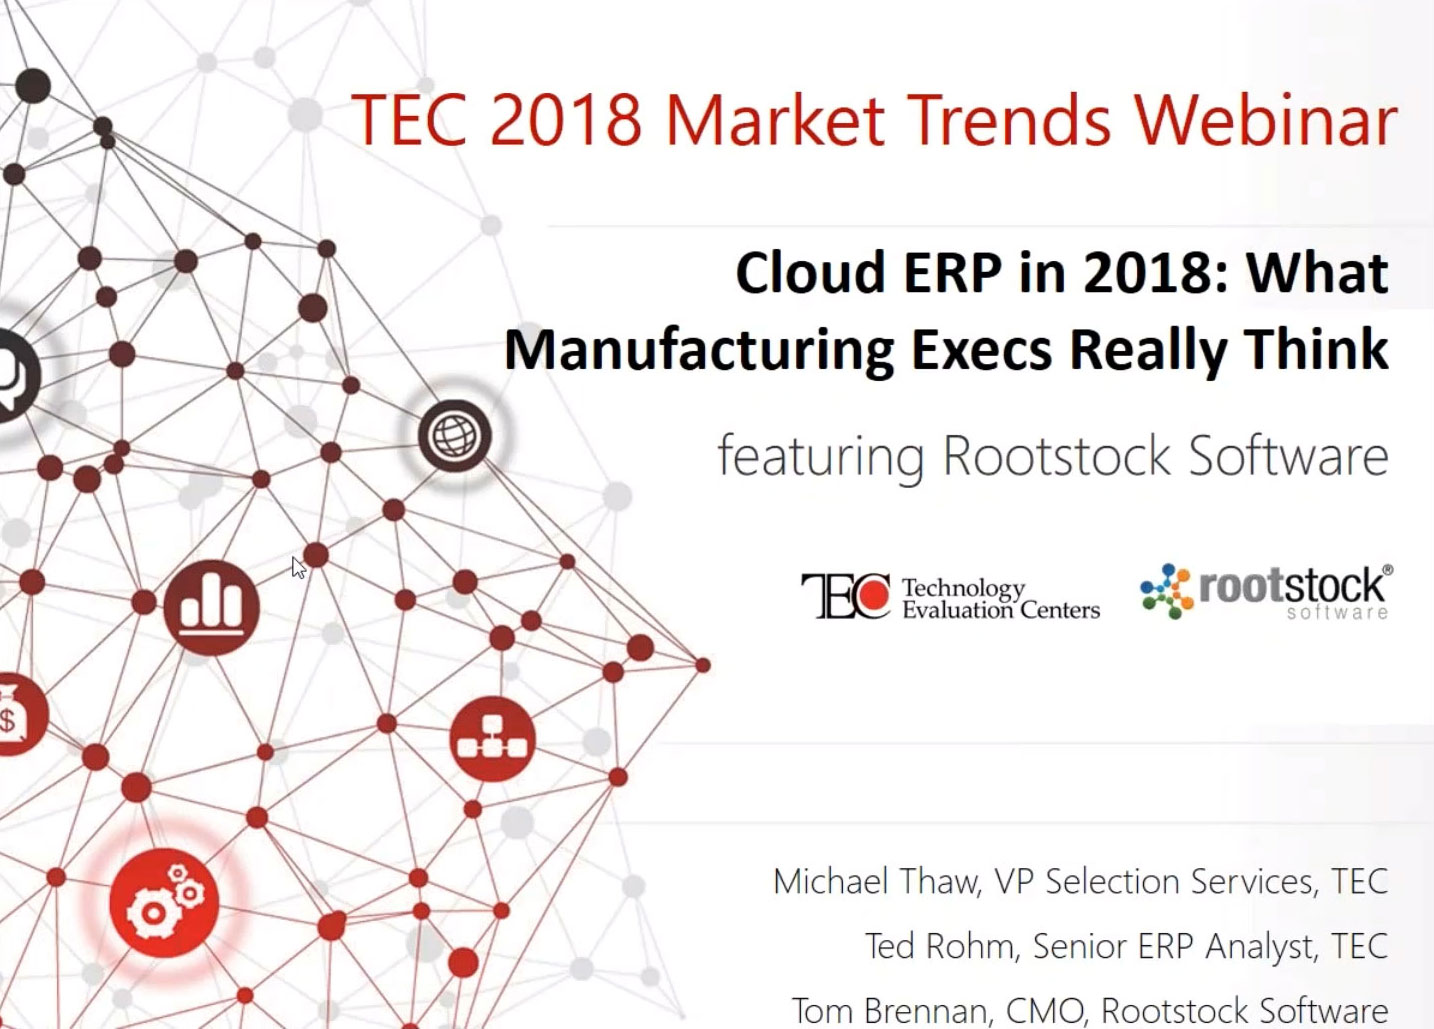 Cloud ERP in 2018: What Manufacturing Execs Really Think